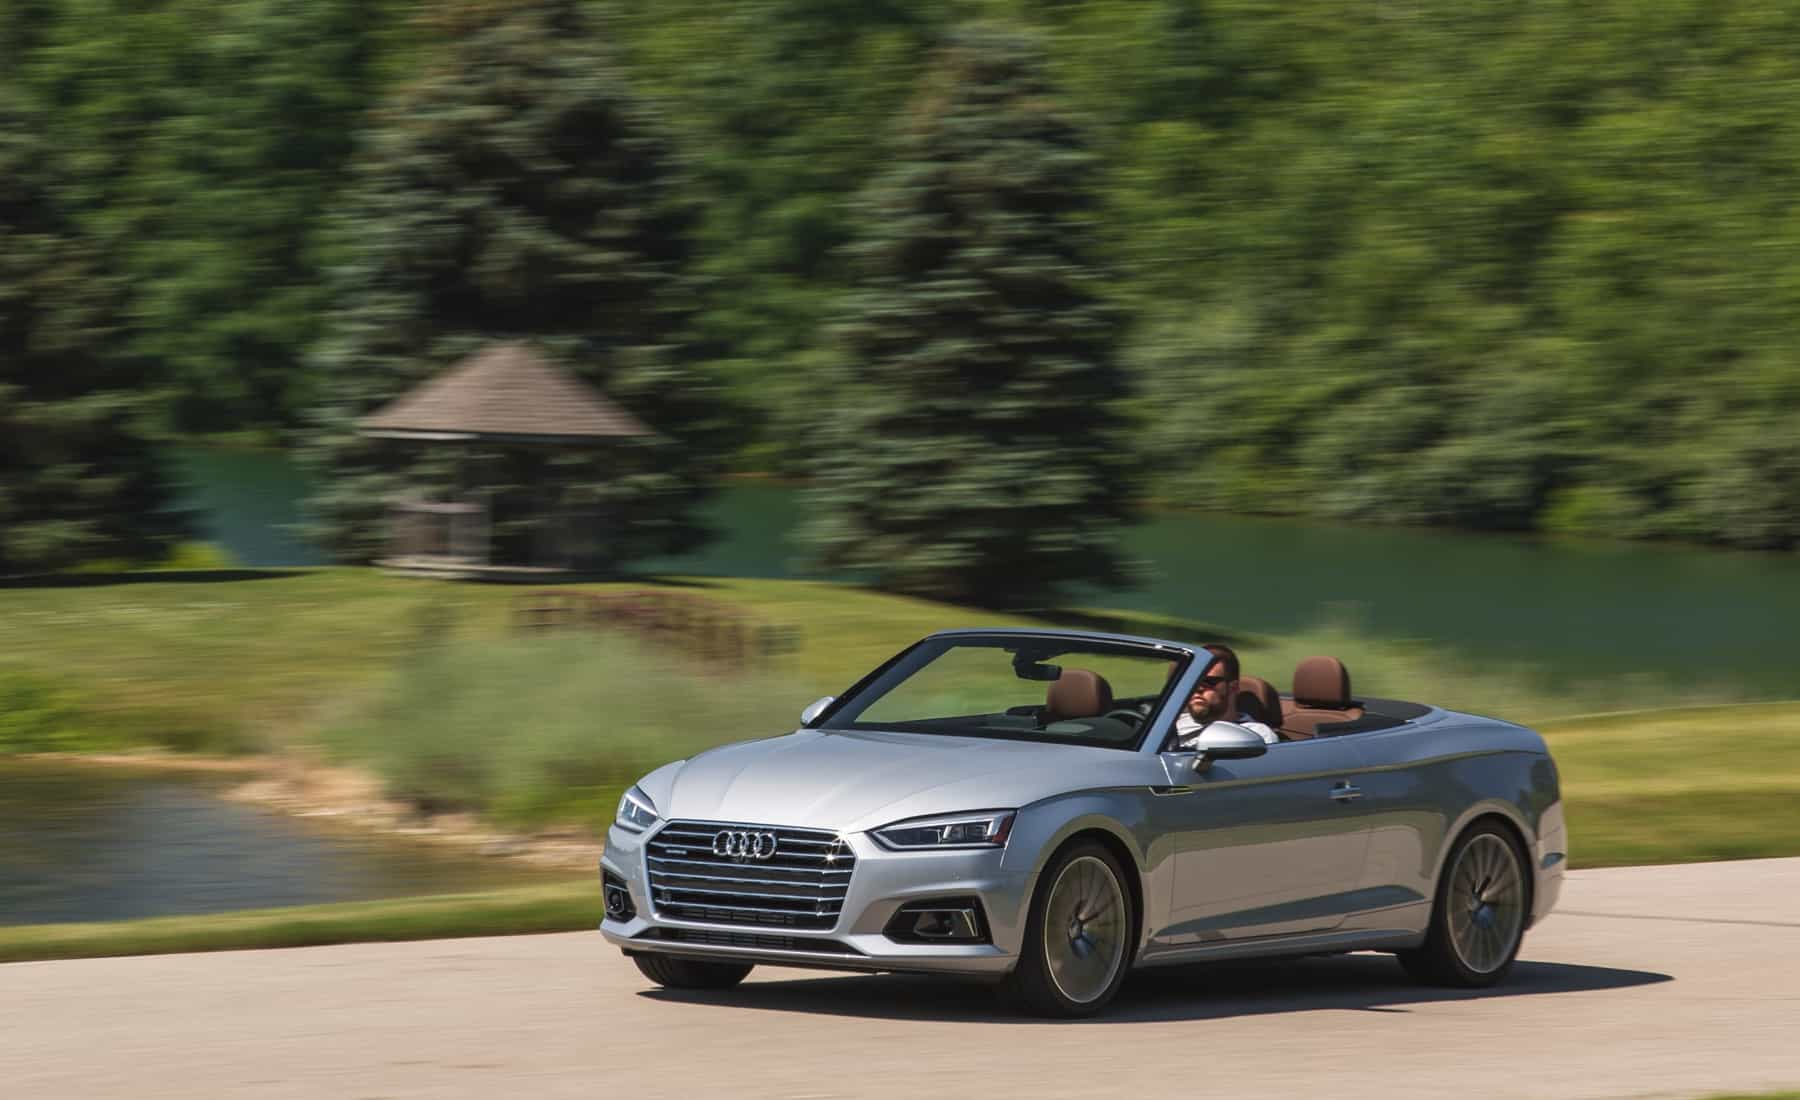 2018 Audi A5 Cabriolet Test Drive Roof Open Front And Side View